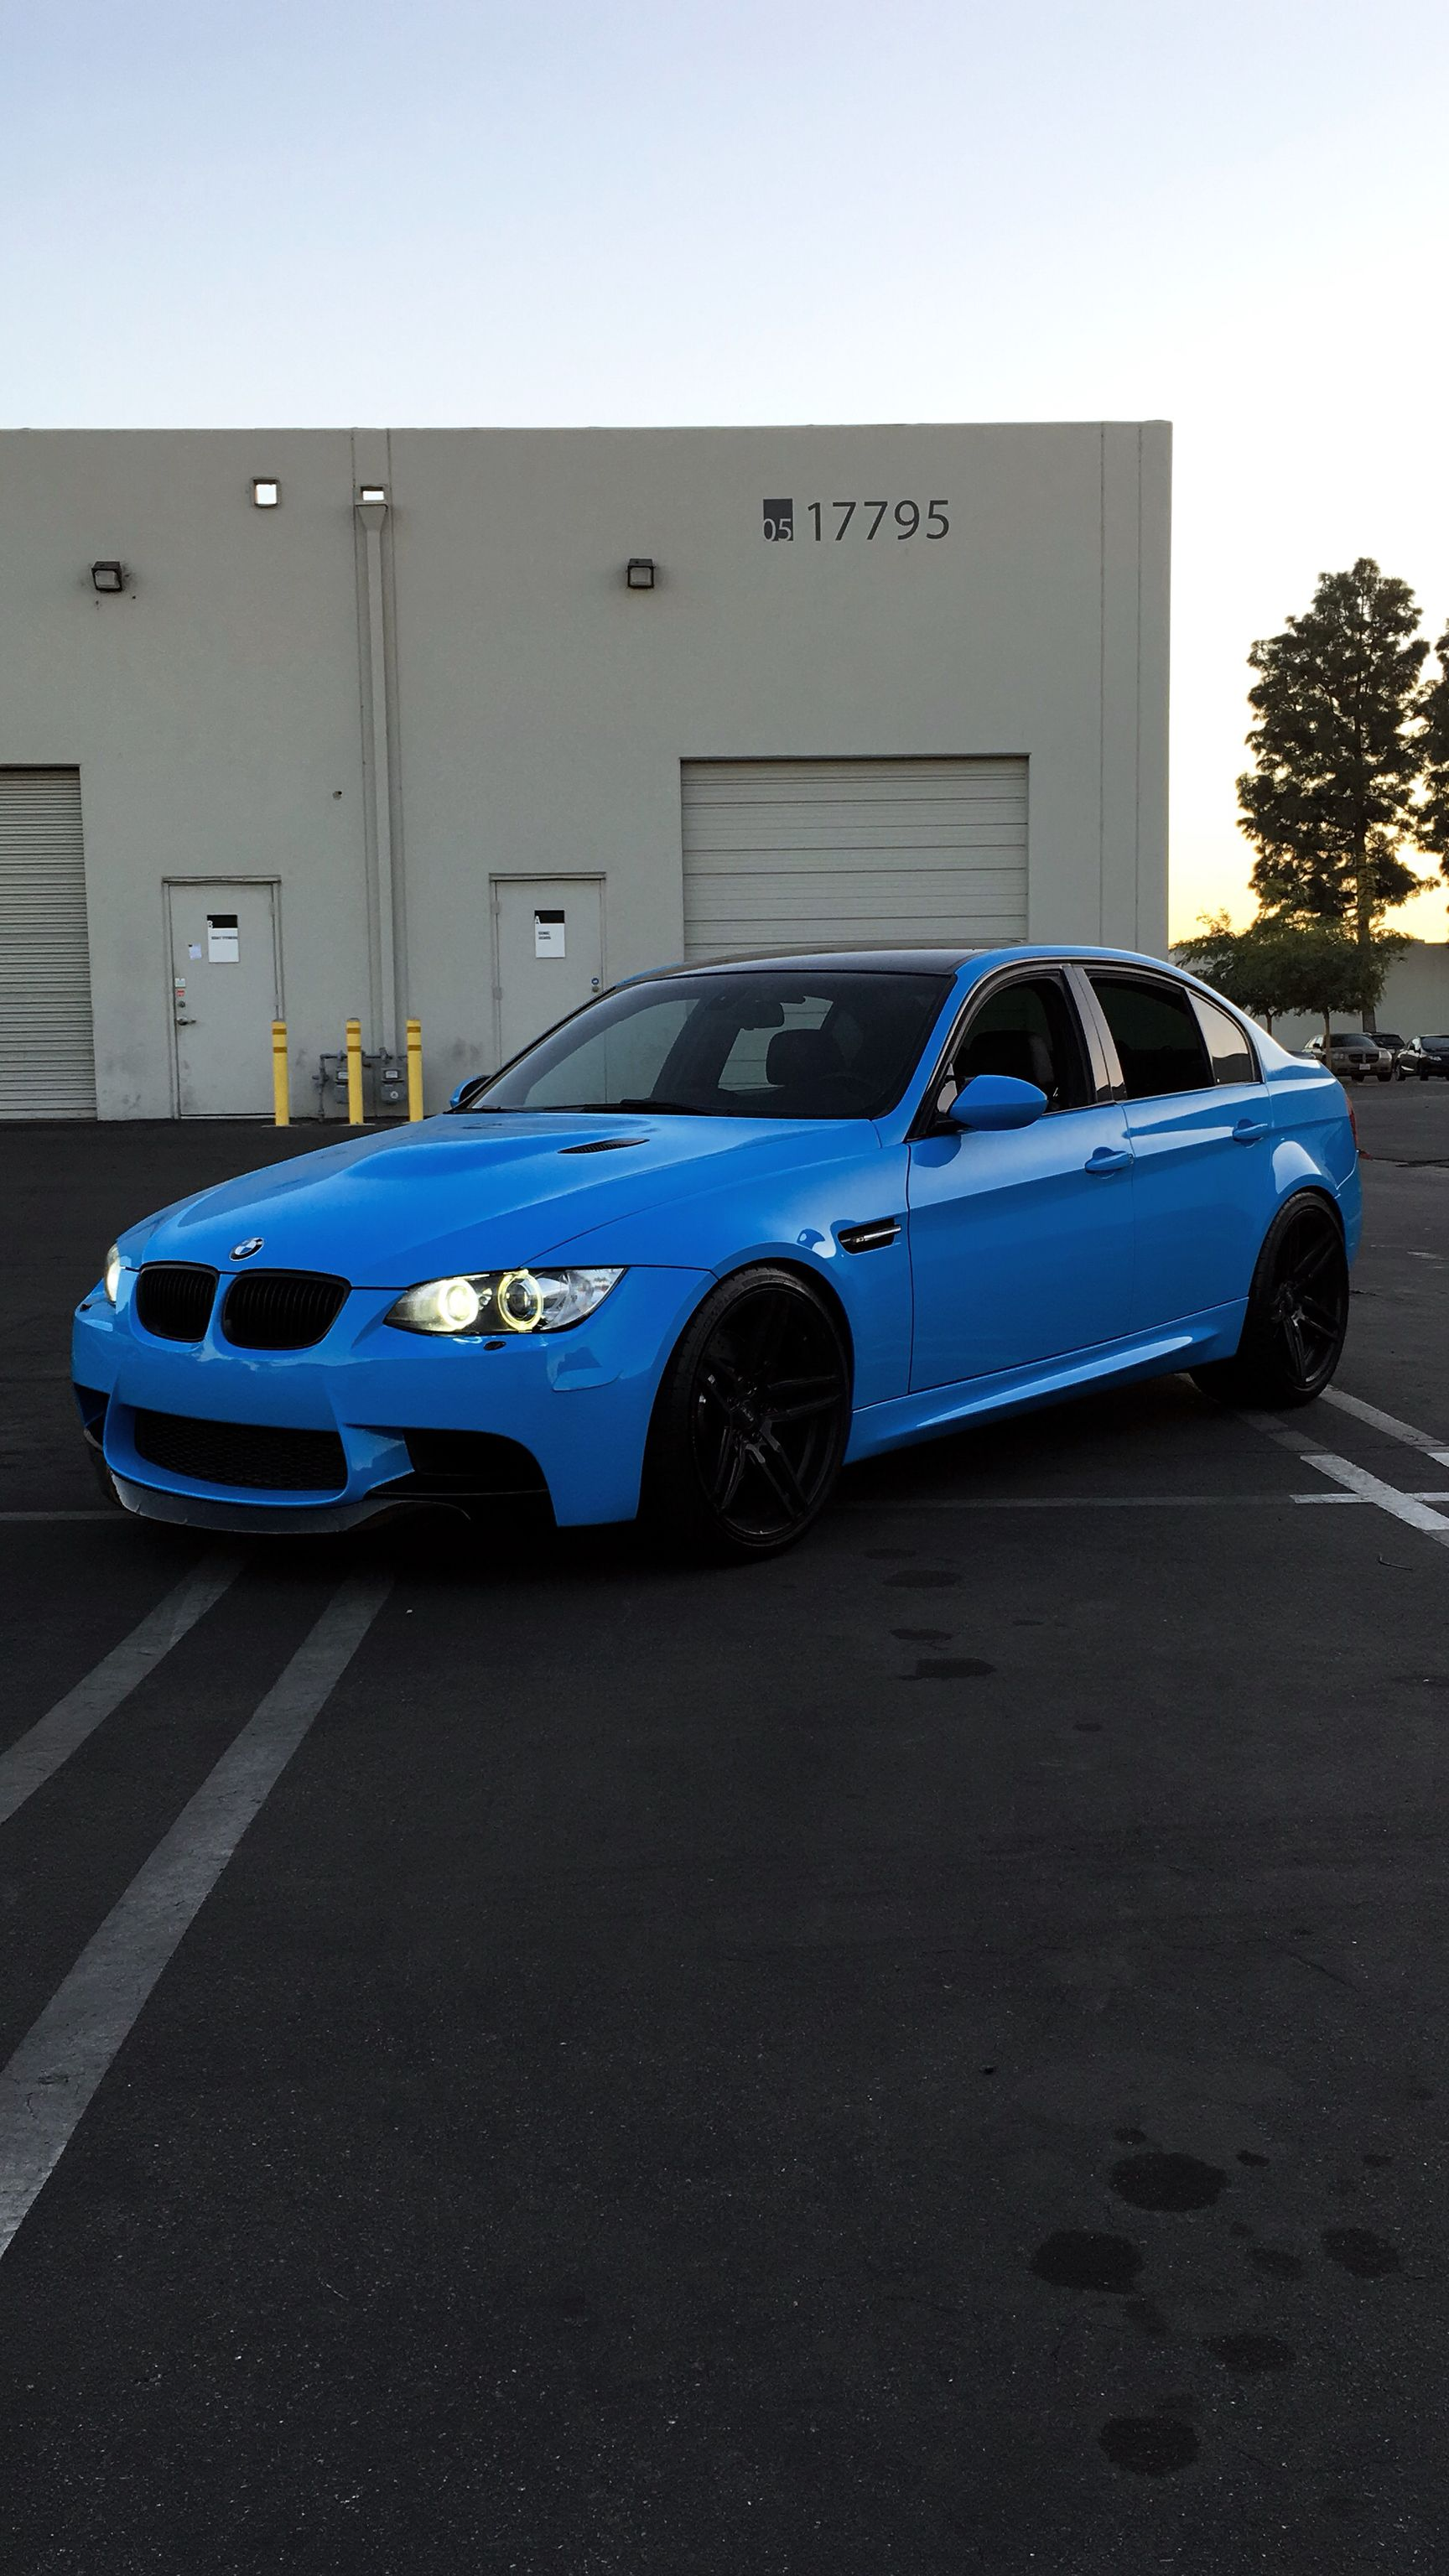 Wrapped My Bmw In Baby Blue With Images Bmw Dream Cars